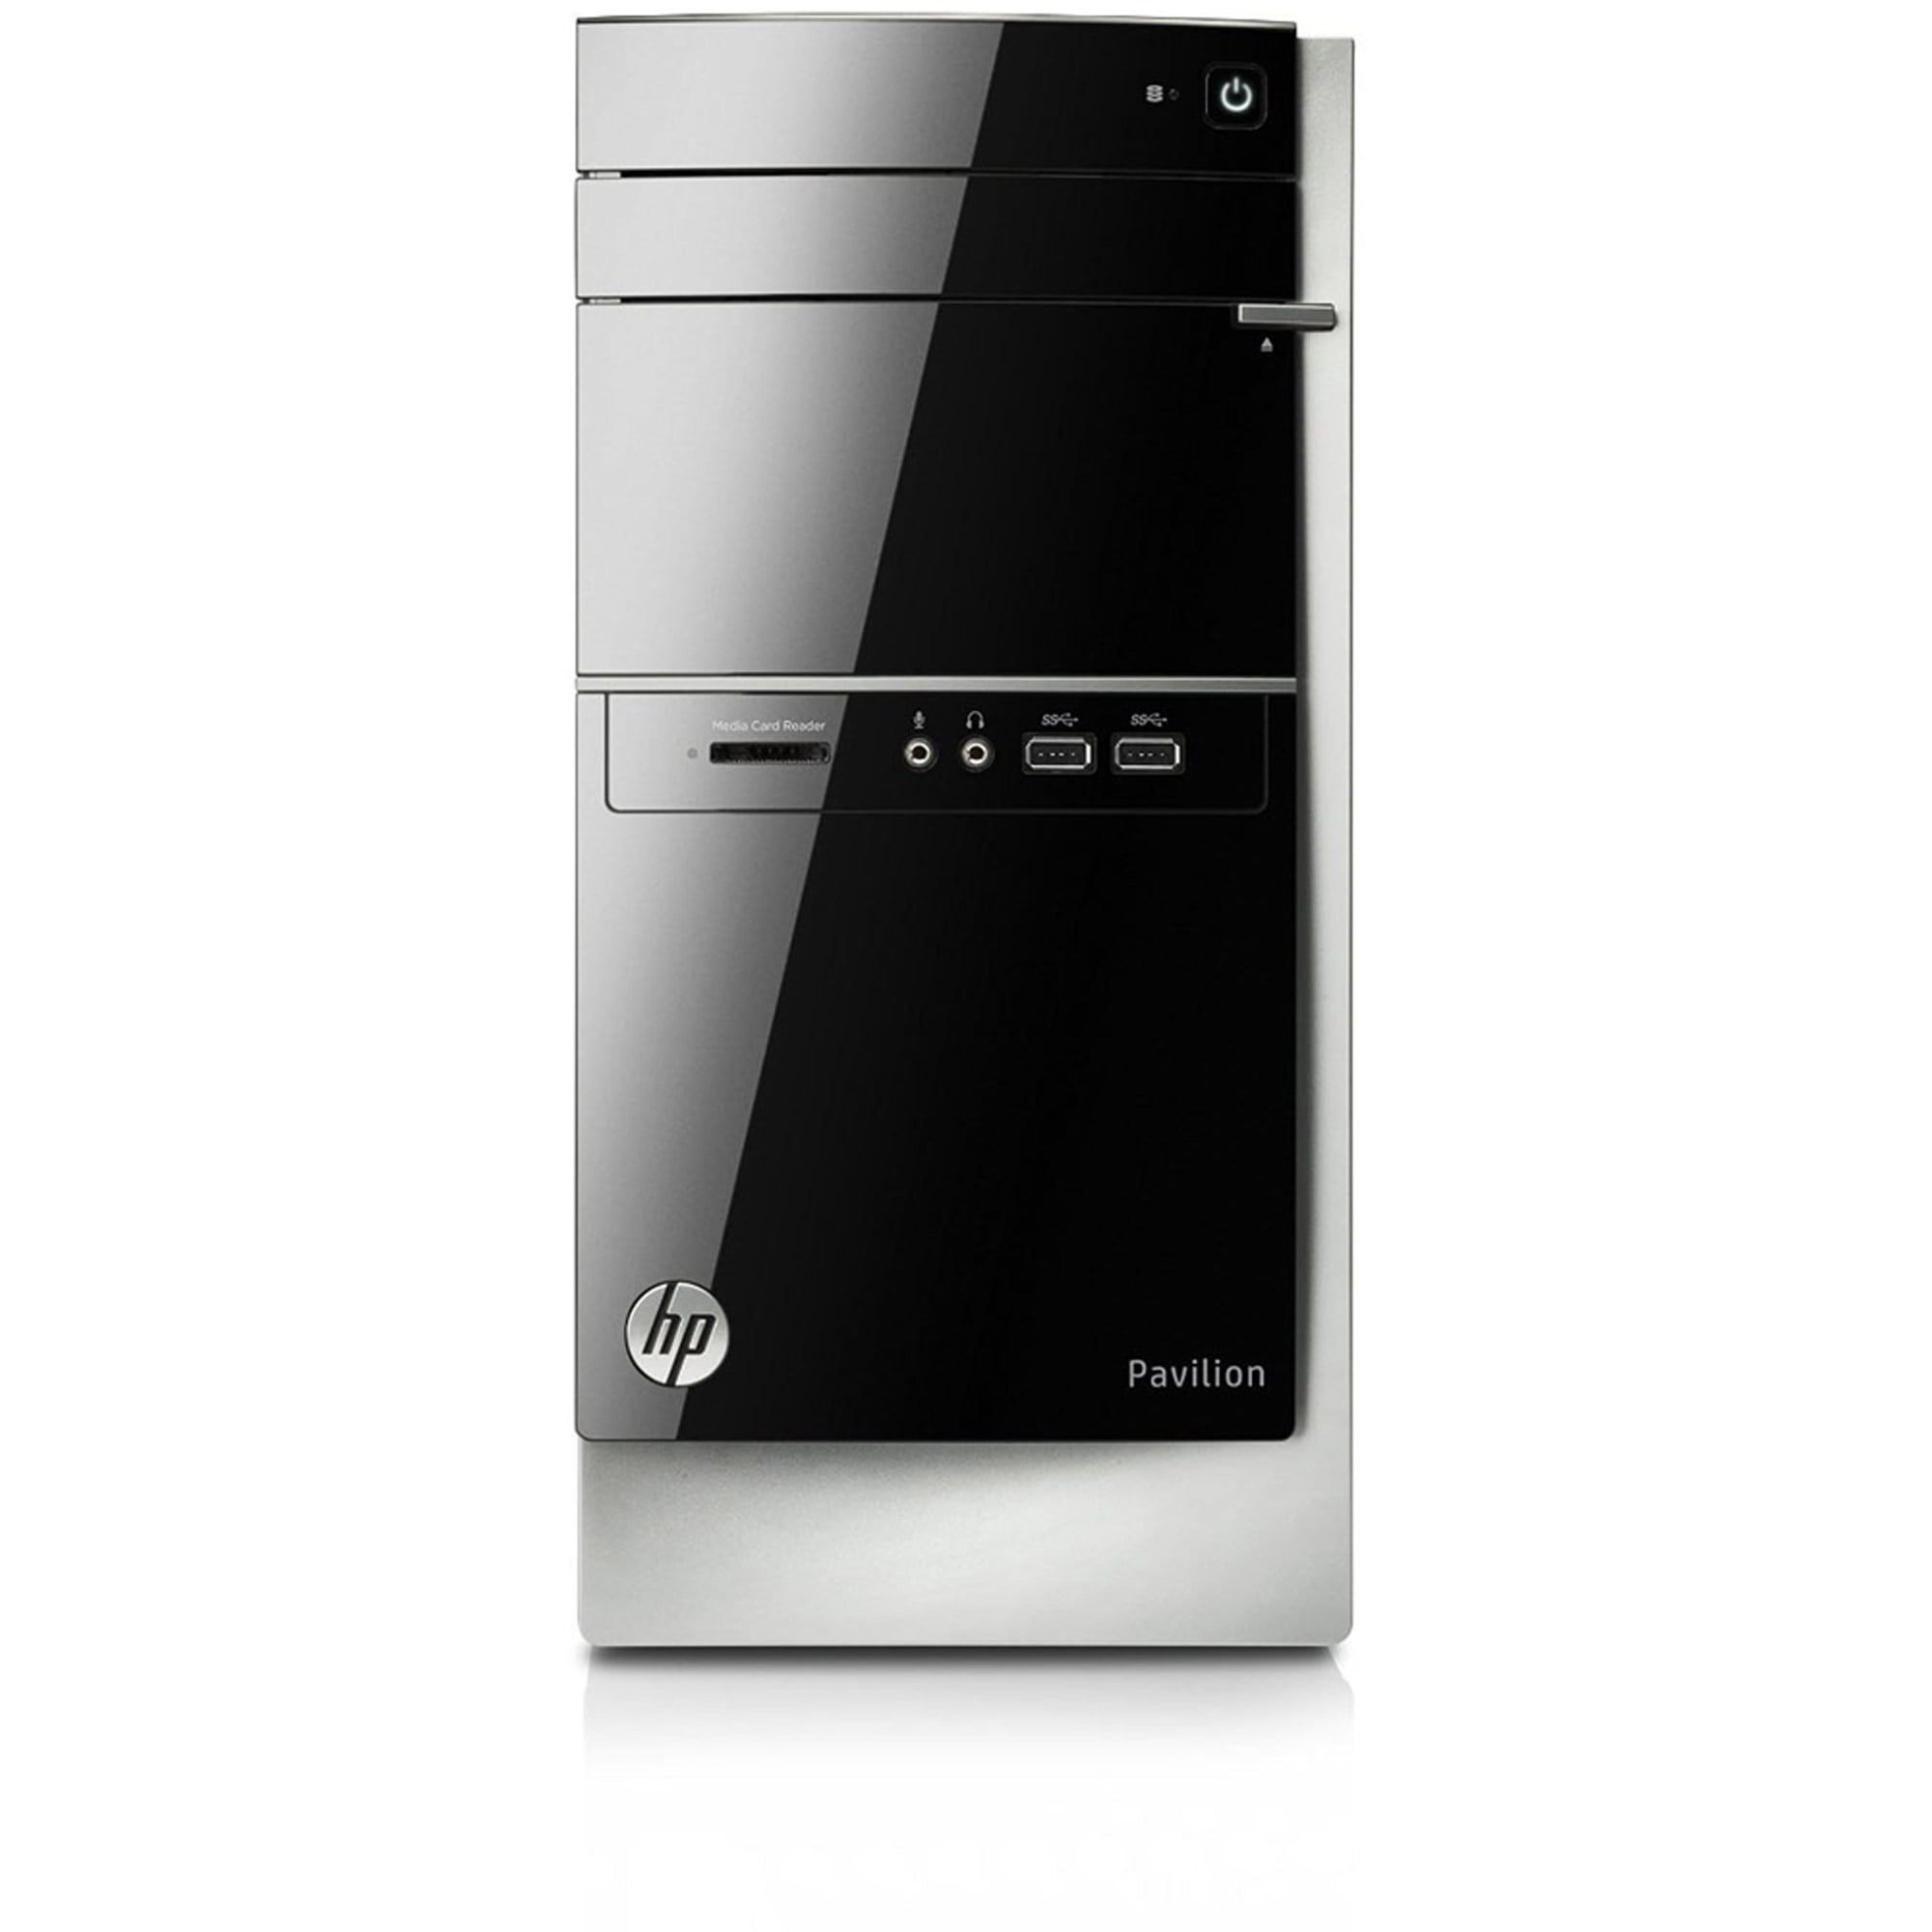 Refurbished HP Gray Pavilion Desktop PC with AMD A8 6410 Quad Core